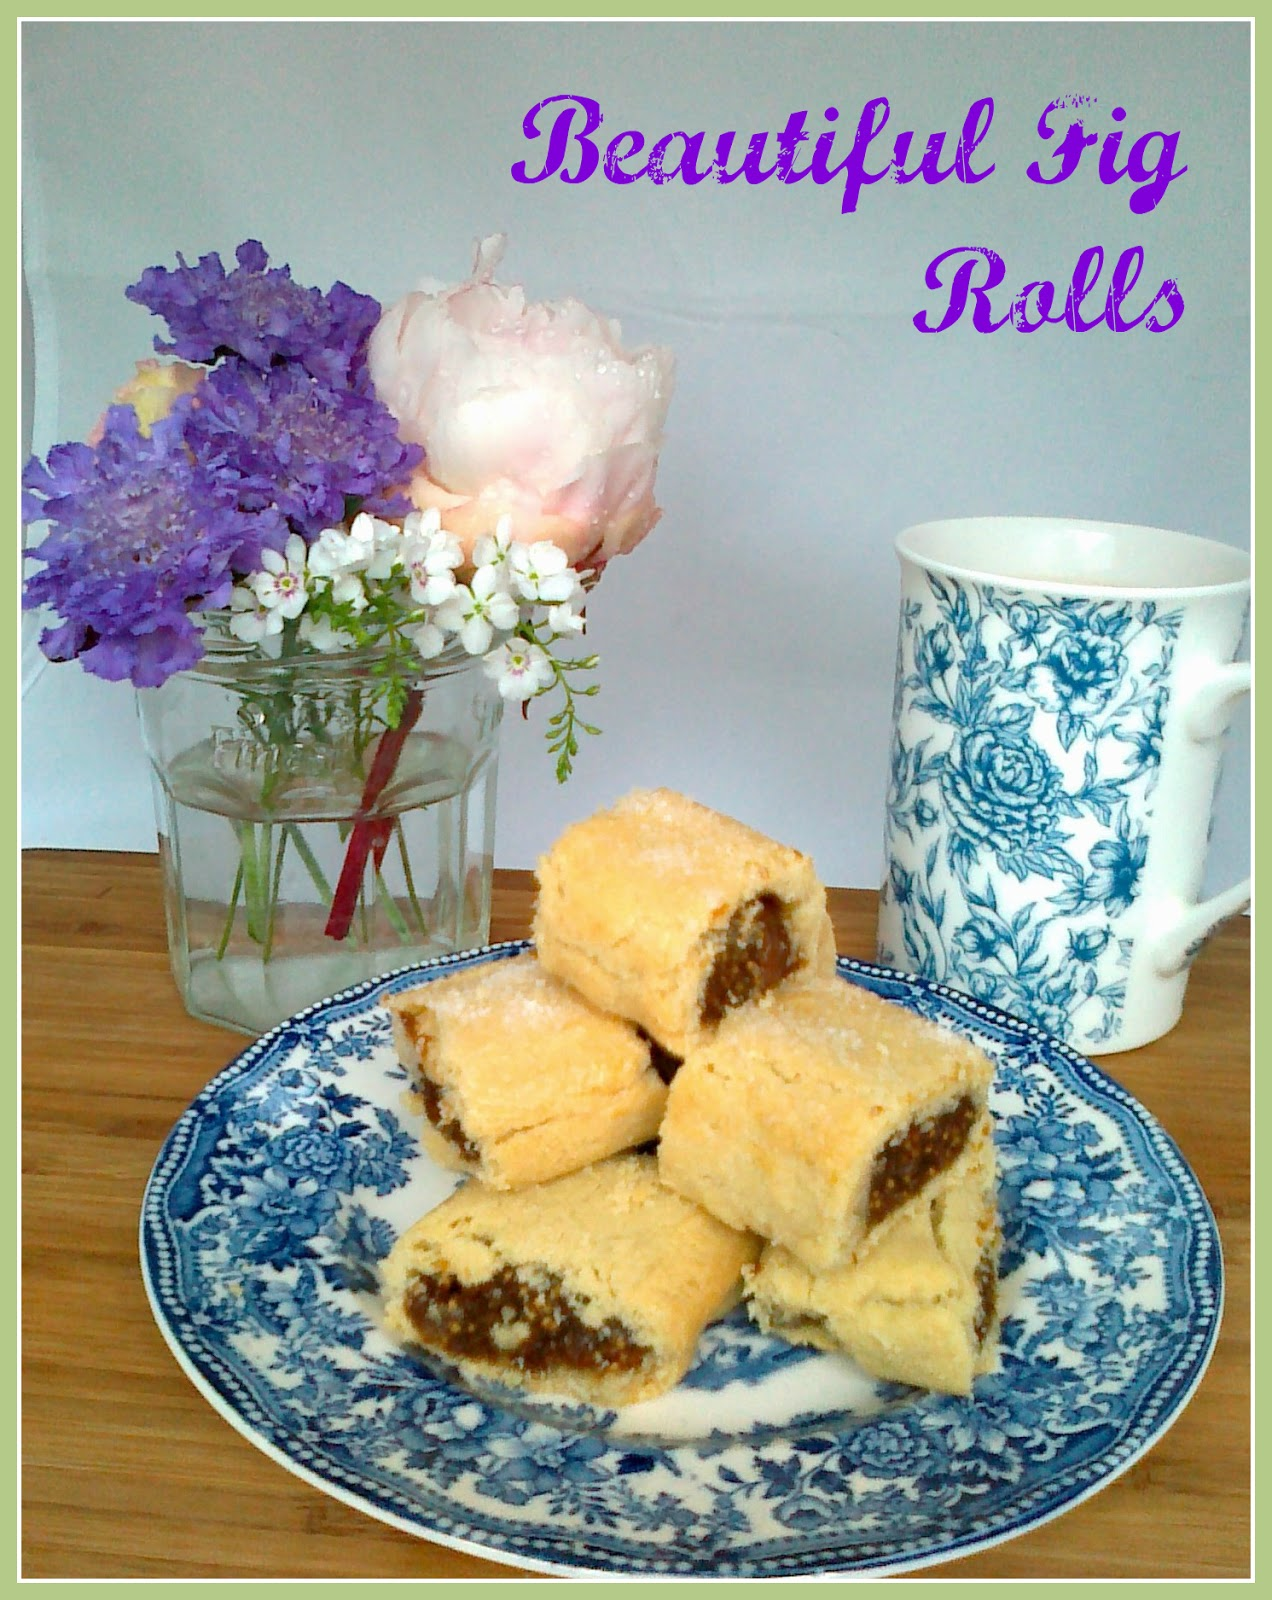 Only Crumbs Remain: Homemade Fig Rolls